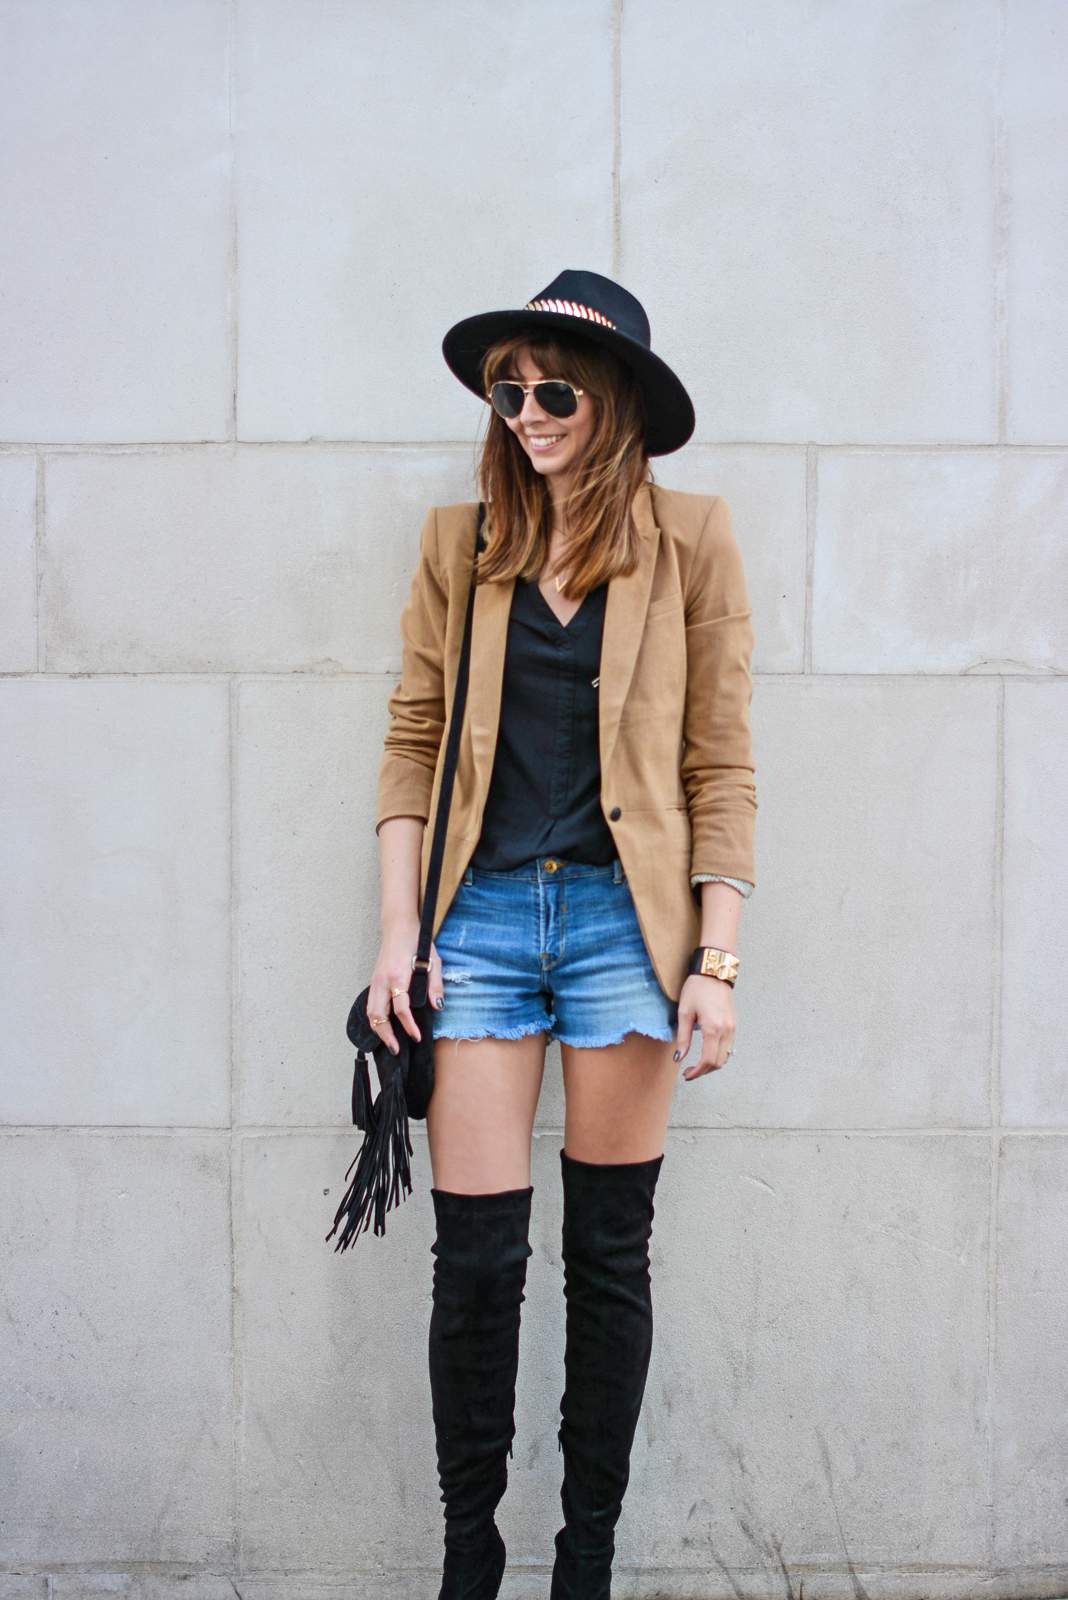 EJSTYLE - Emma Hill wearing Camel blazer, black shirt, black suede thigh high OTK boots, Fedora hat, denim shorts, black suede fringe tassel bag, collier de chien cuff bracelet, aviator sunglasses